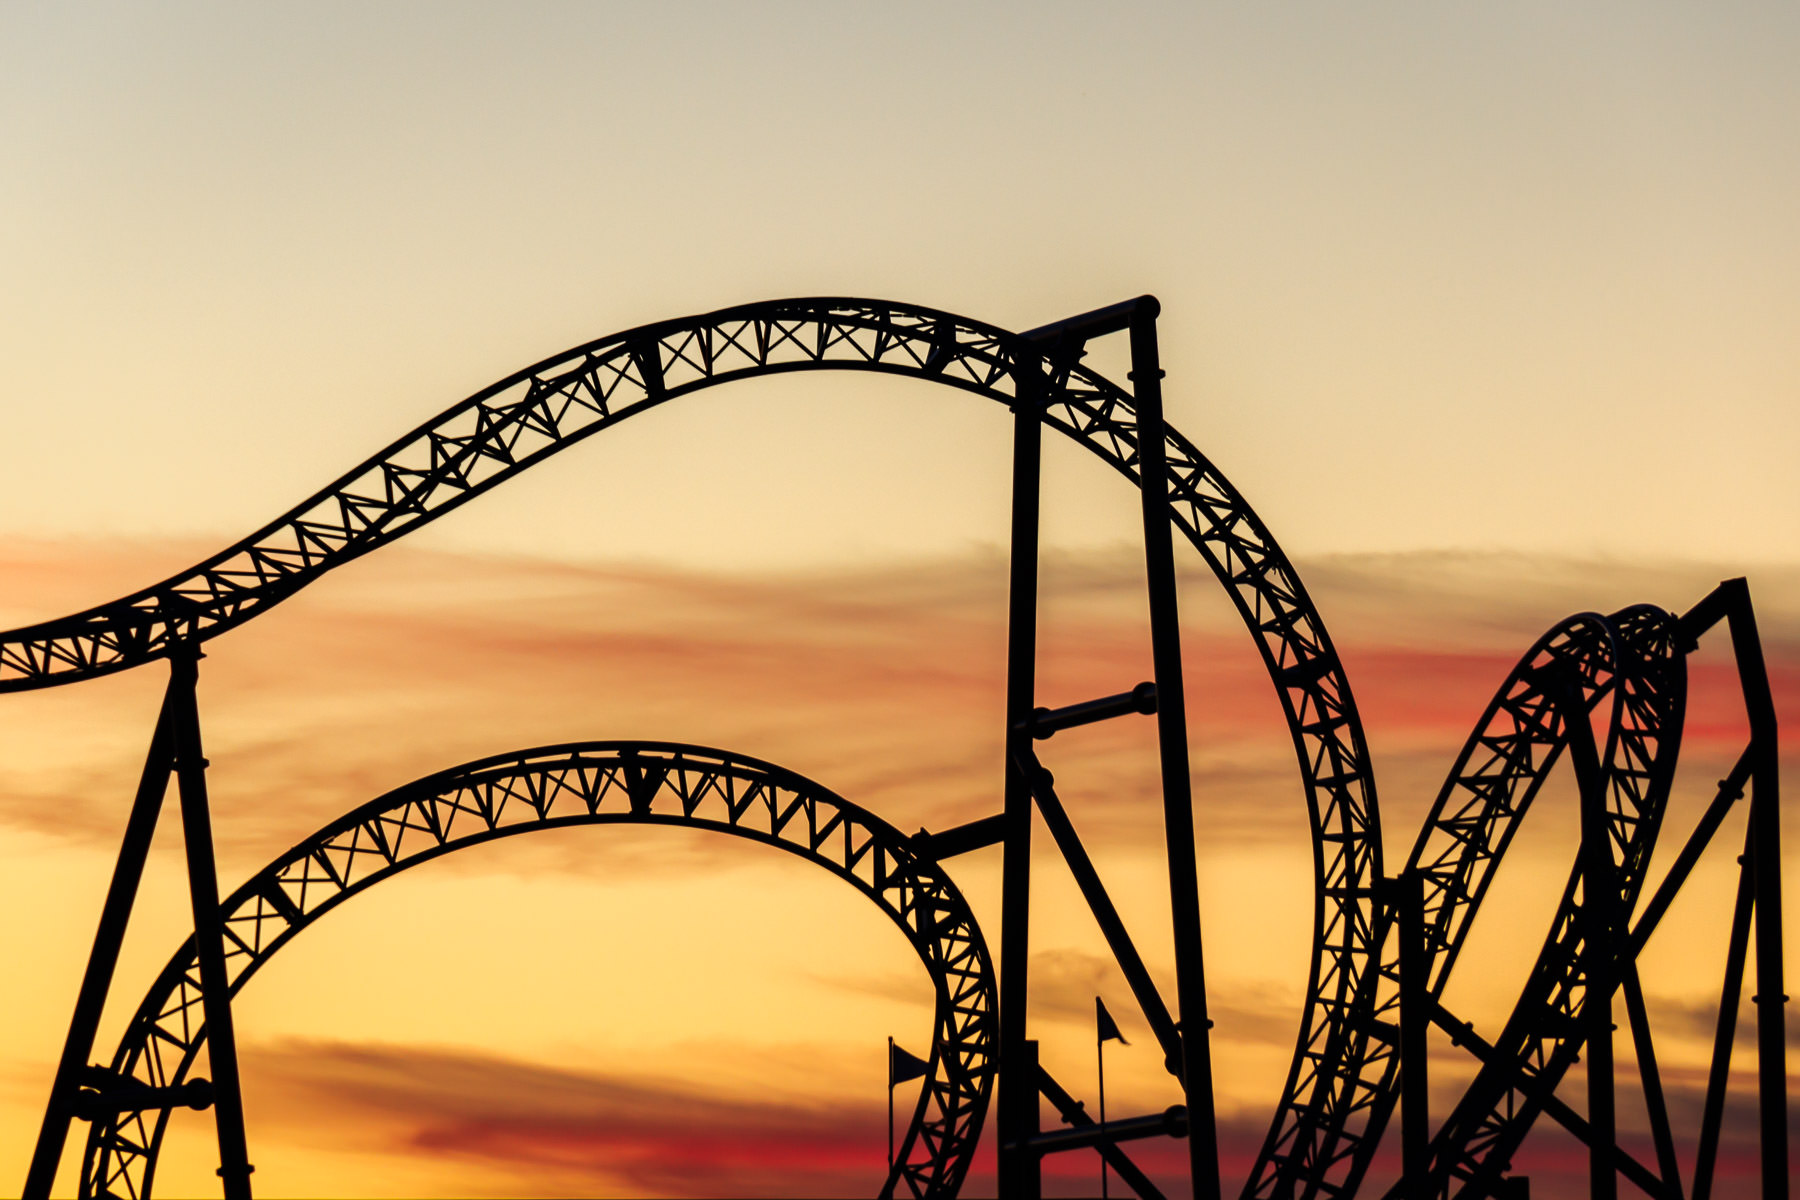 The curving, twisting track of the roller coaster at Galveston, Texas' Pleasure Pier, backlight by the rising sun.